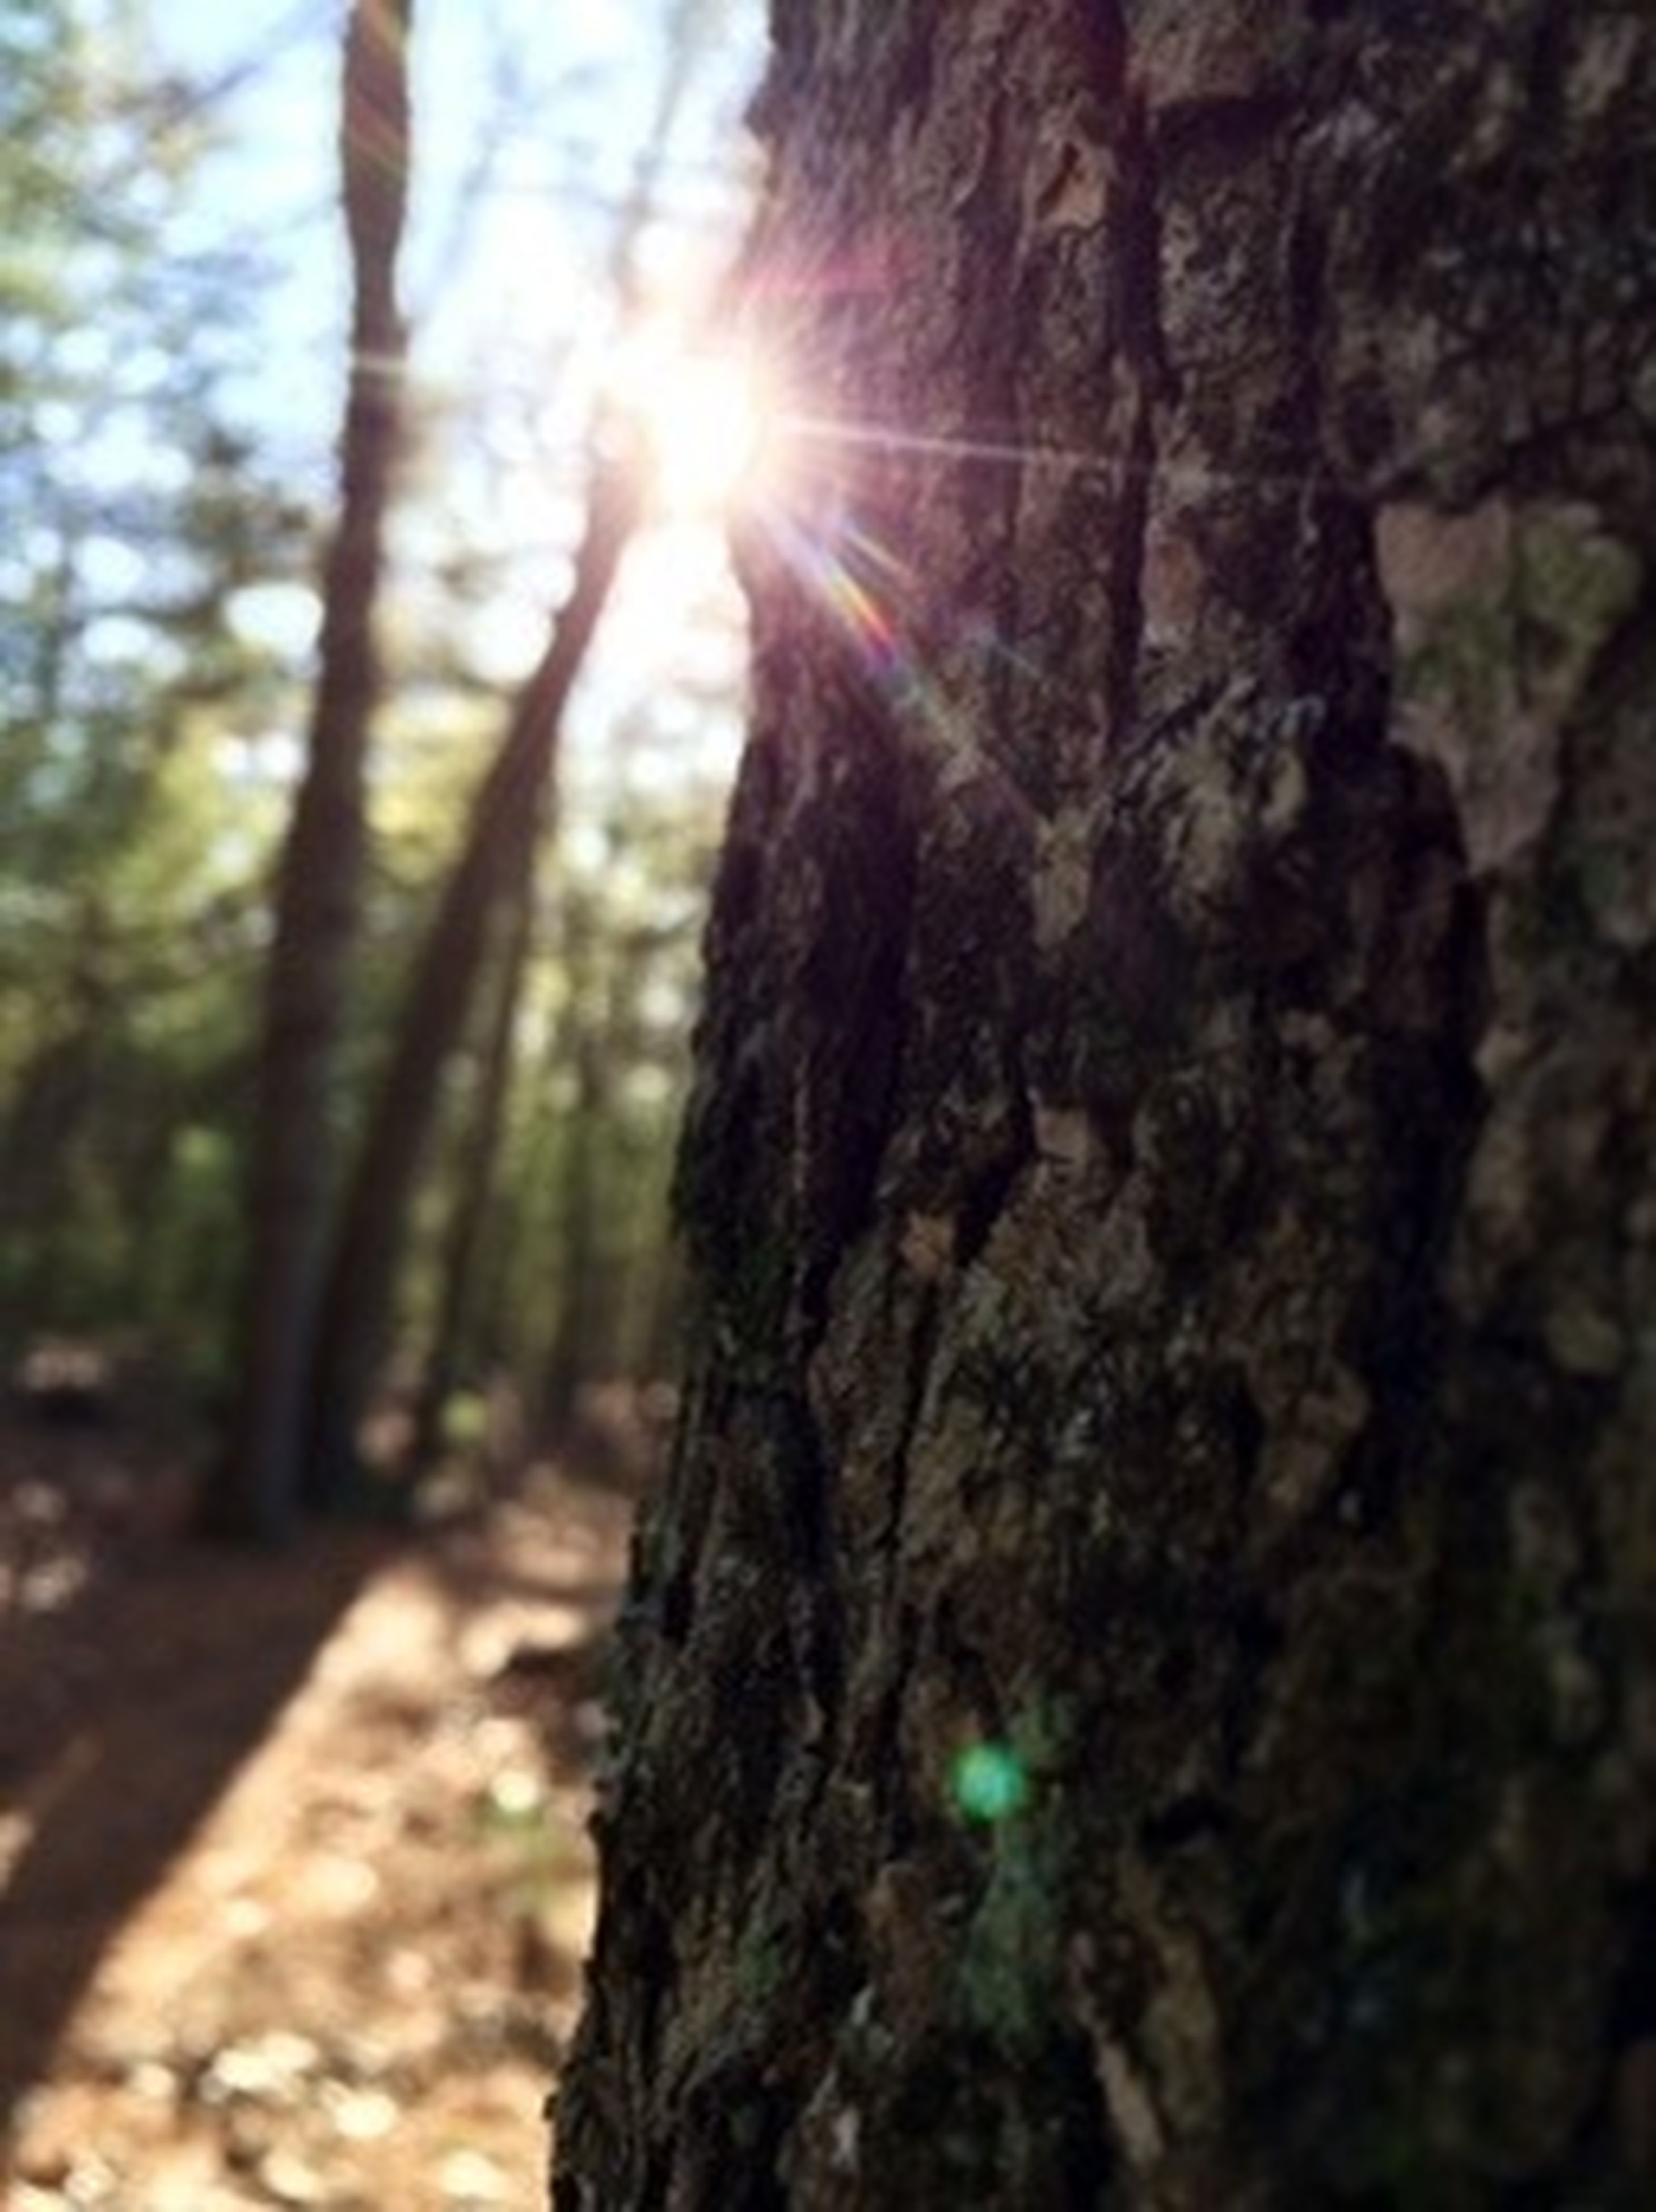 tree, tree trunk, textured, sunlight, nature, focus on foreground, lens flare, low angle view, close-up, bark, sun, rough, sunbeam, forest, tranquility, outdoors, selective focus, growth, day, no people